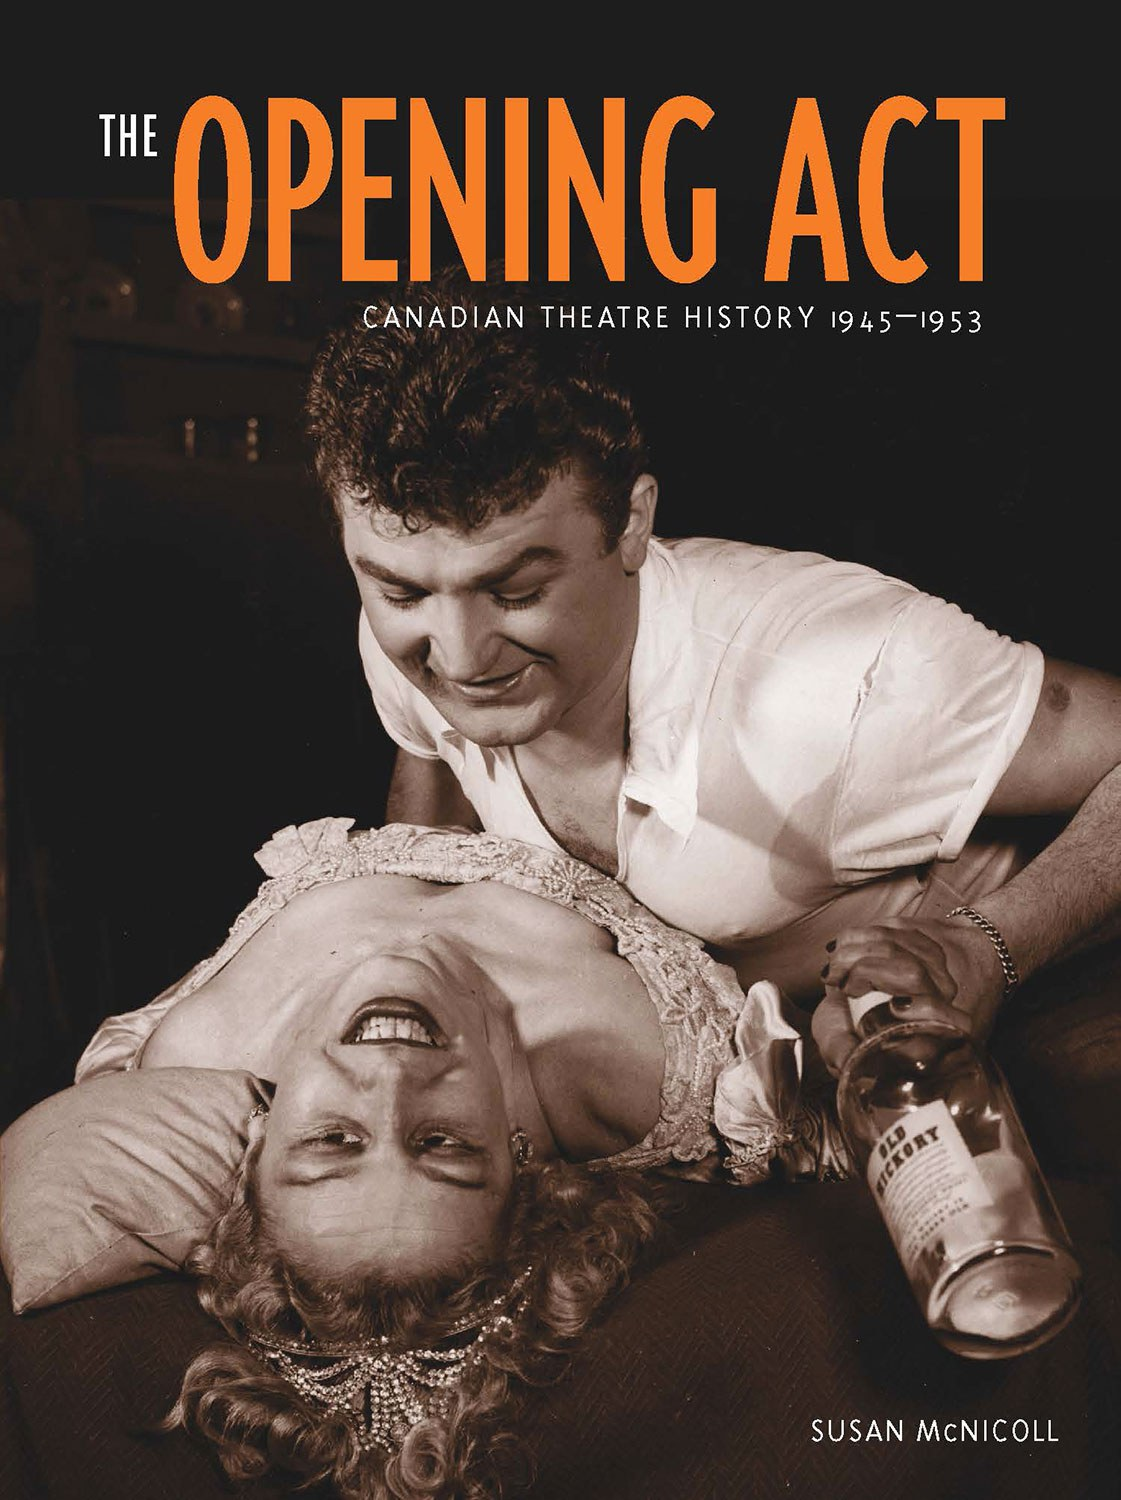 The Opening Act: Canadian Theatre History 1945-1953, de Susan McNicoll. Ronsdale Press, 2012.